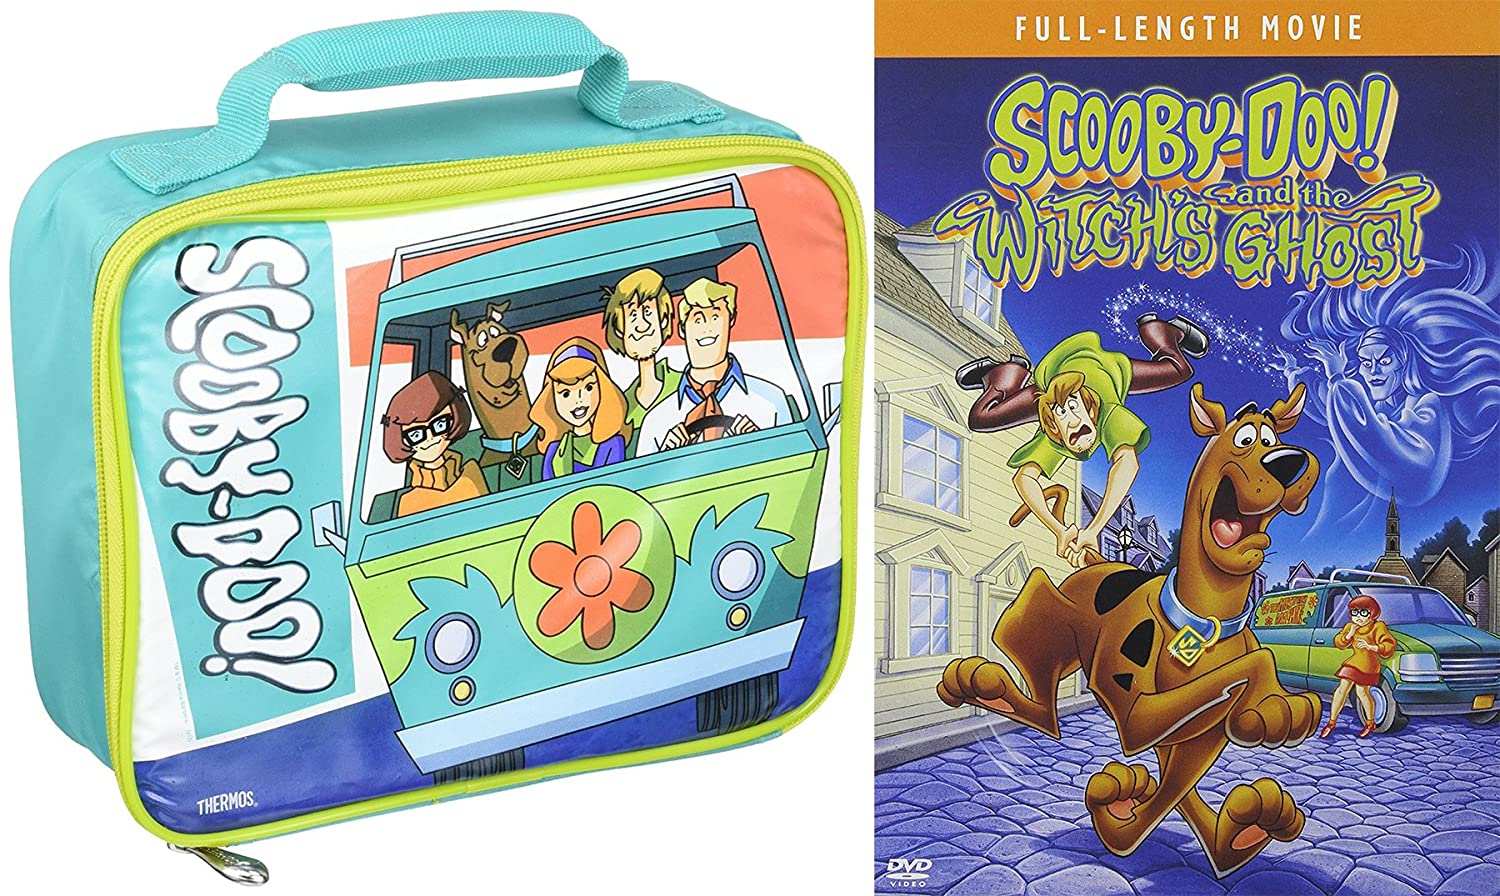 Amazon Com Scooby Doo And The Witch S Ghost Cartoon Movie Dvd Mystery Machine Thermos Soft Lunch Kit Bag Bundle Scooby Doo Movies Tv